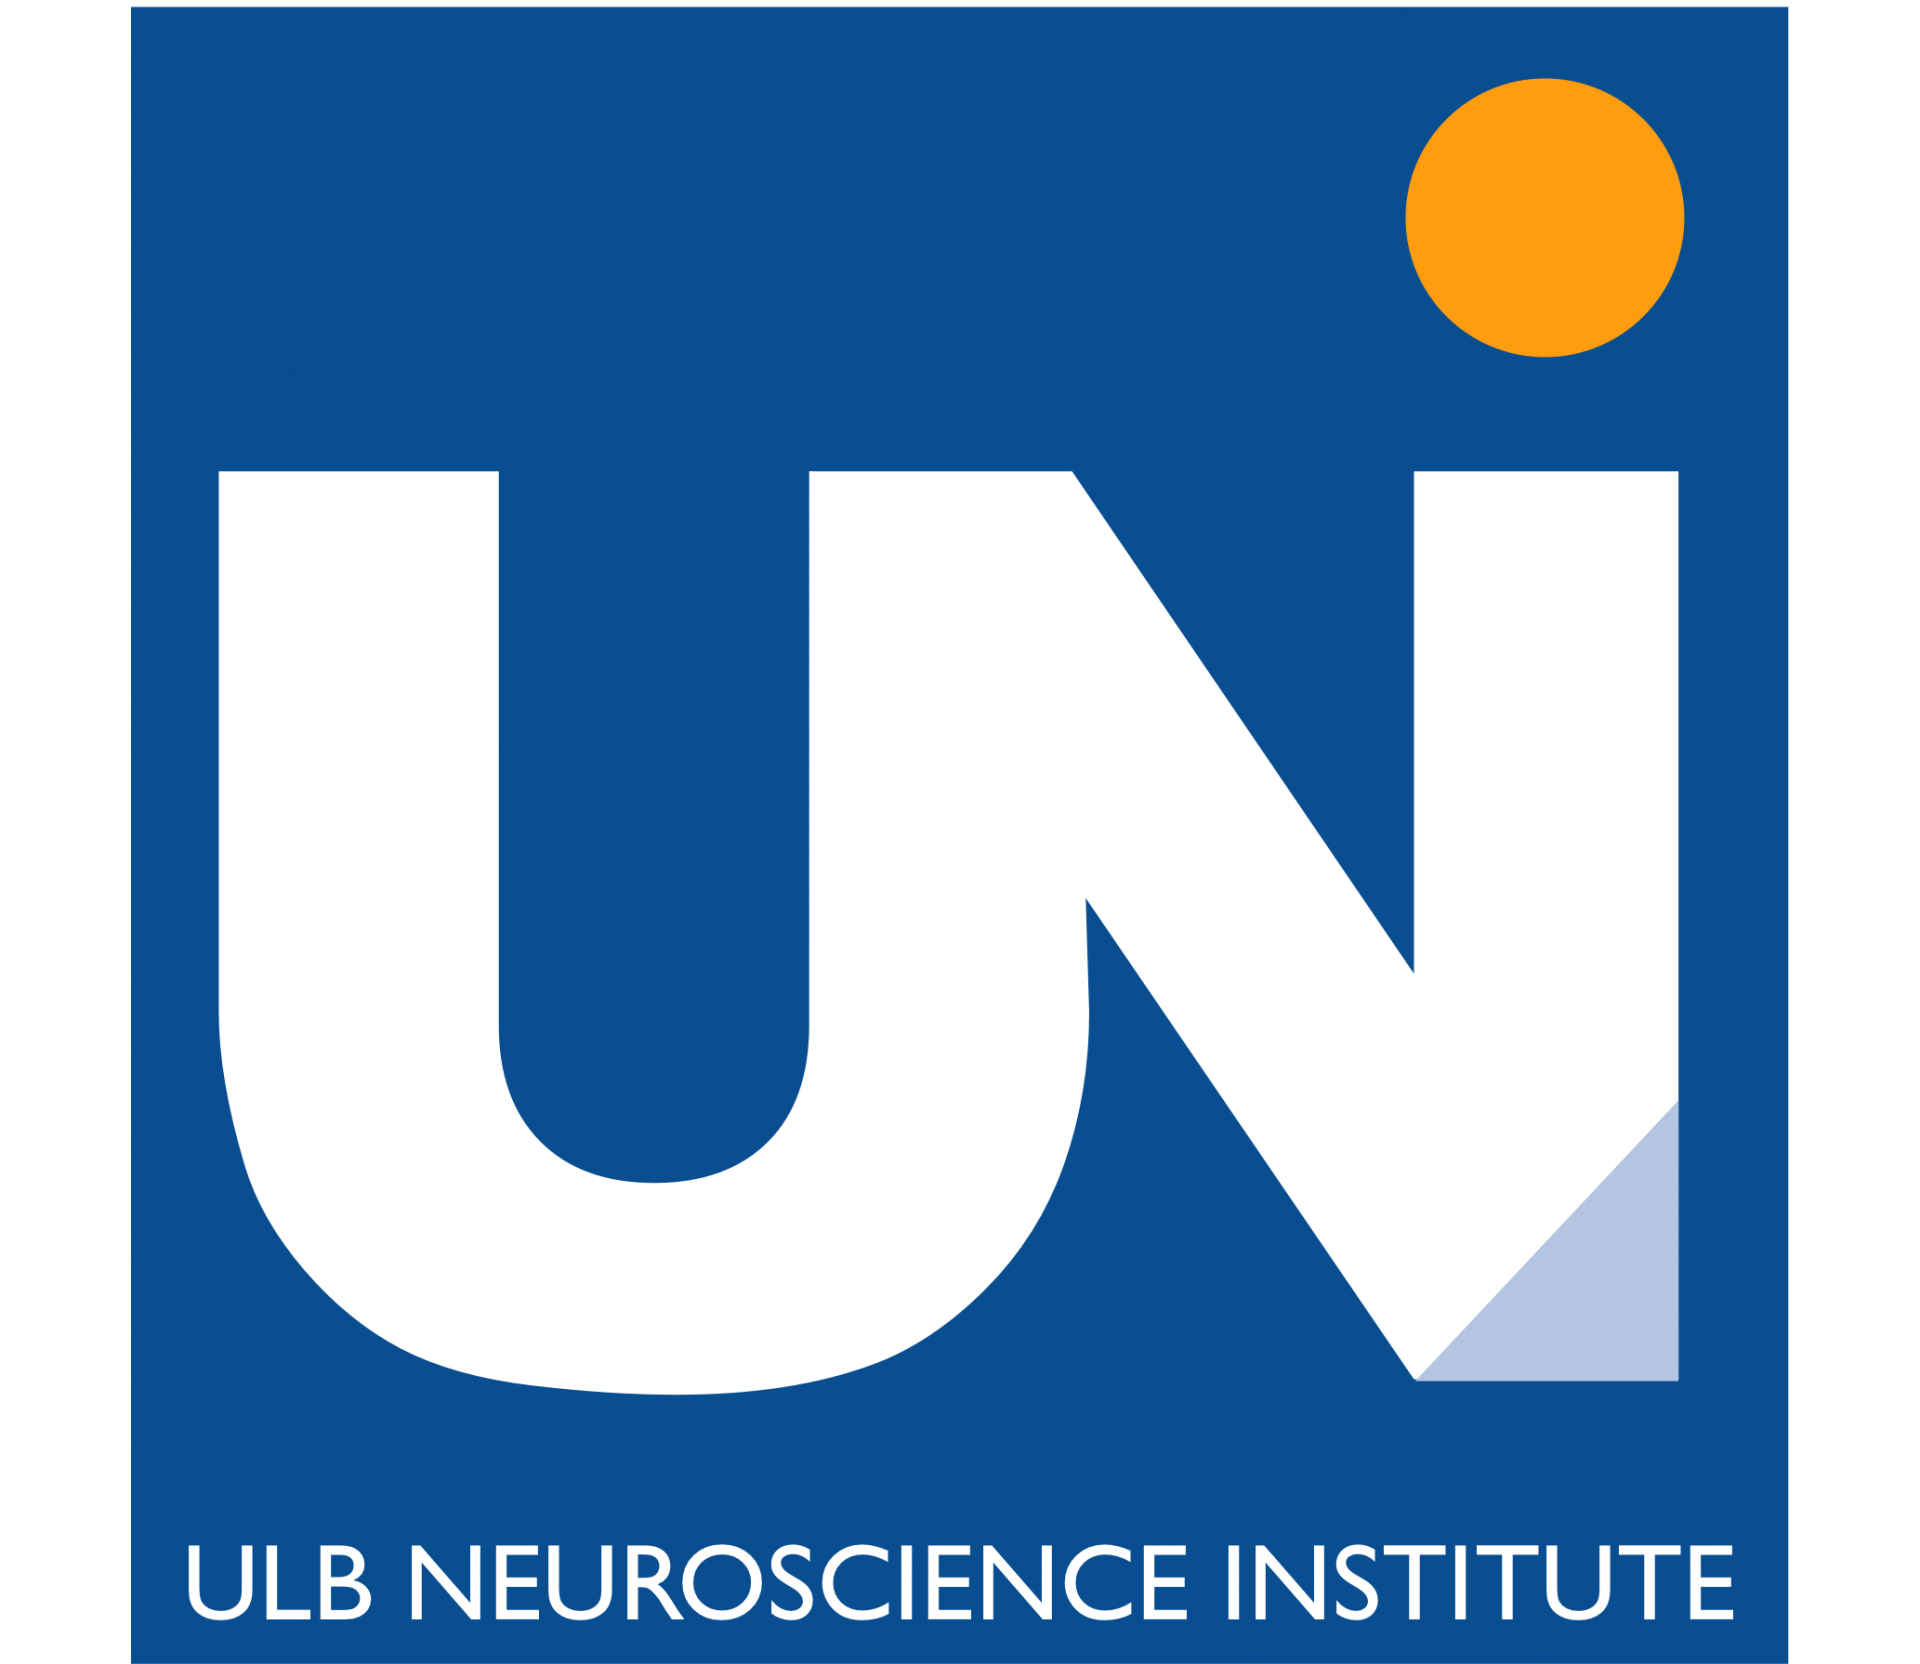 THE ULB NEUROSCIENCE INSTITUTE INTERNATIONAL Ph.D. PROGRAM IN NEUROSCIENCE 2017 CALL